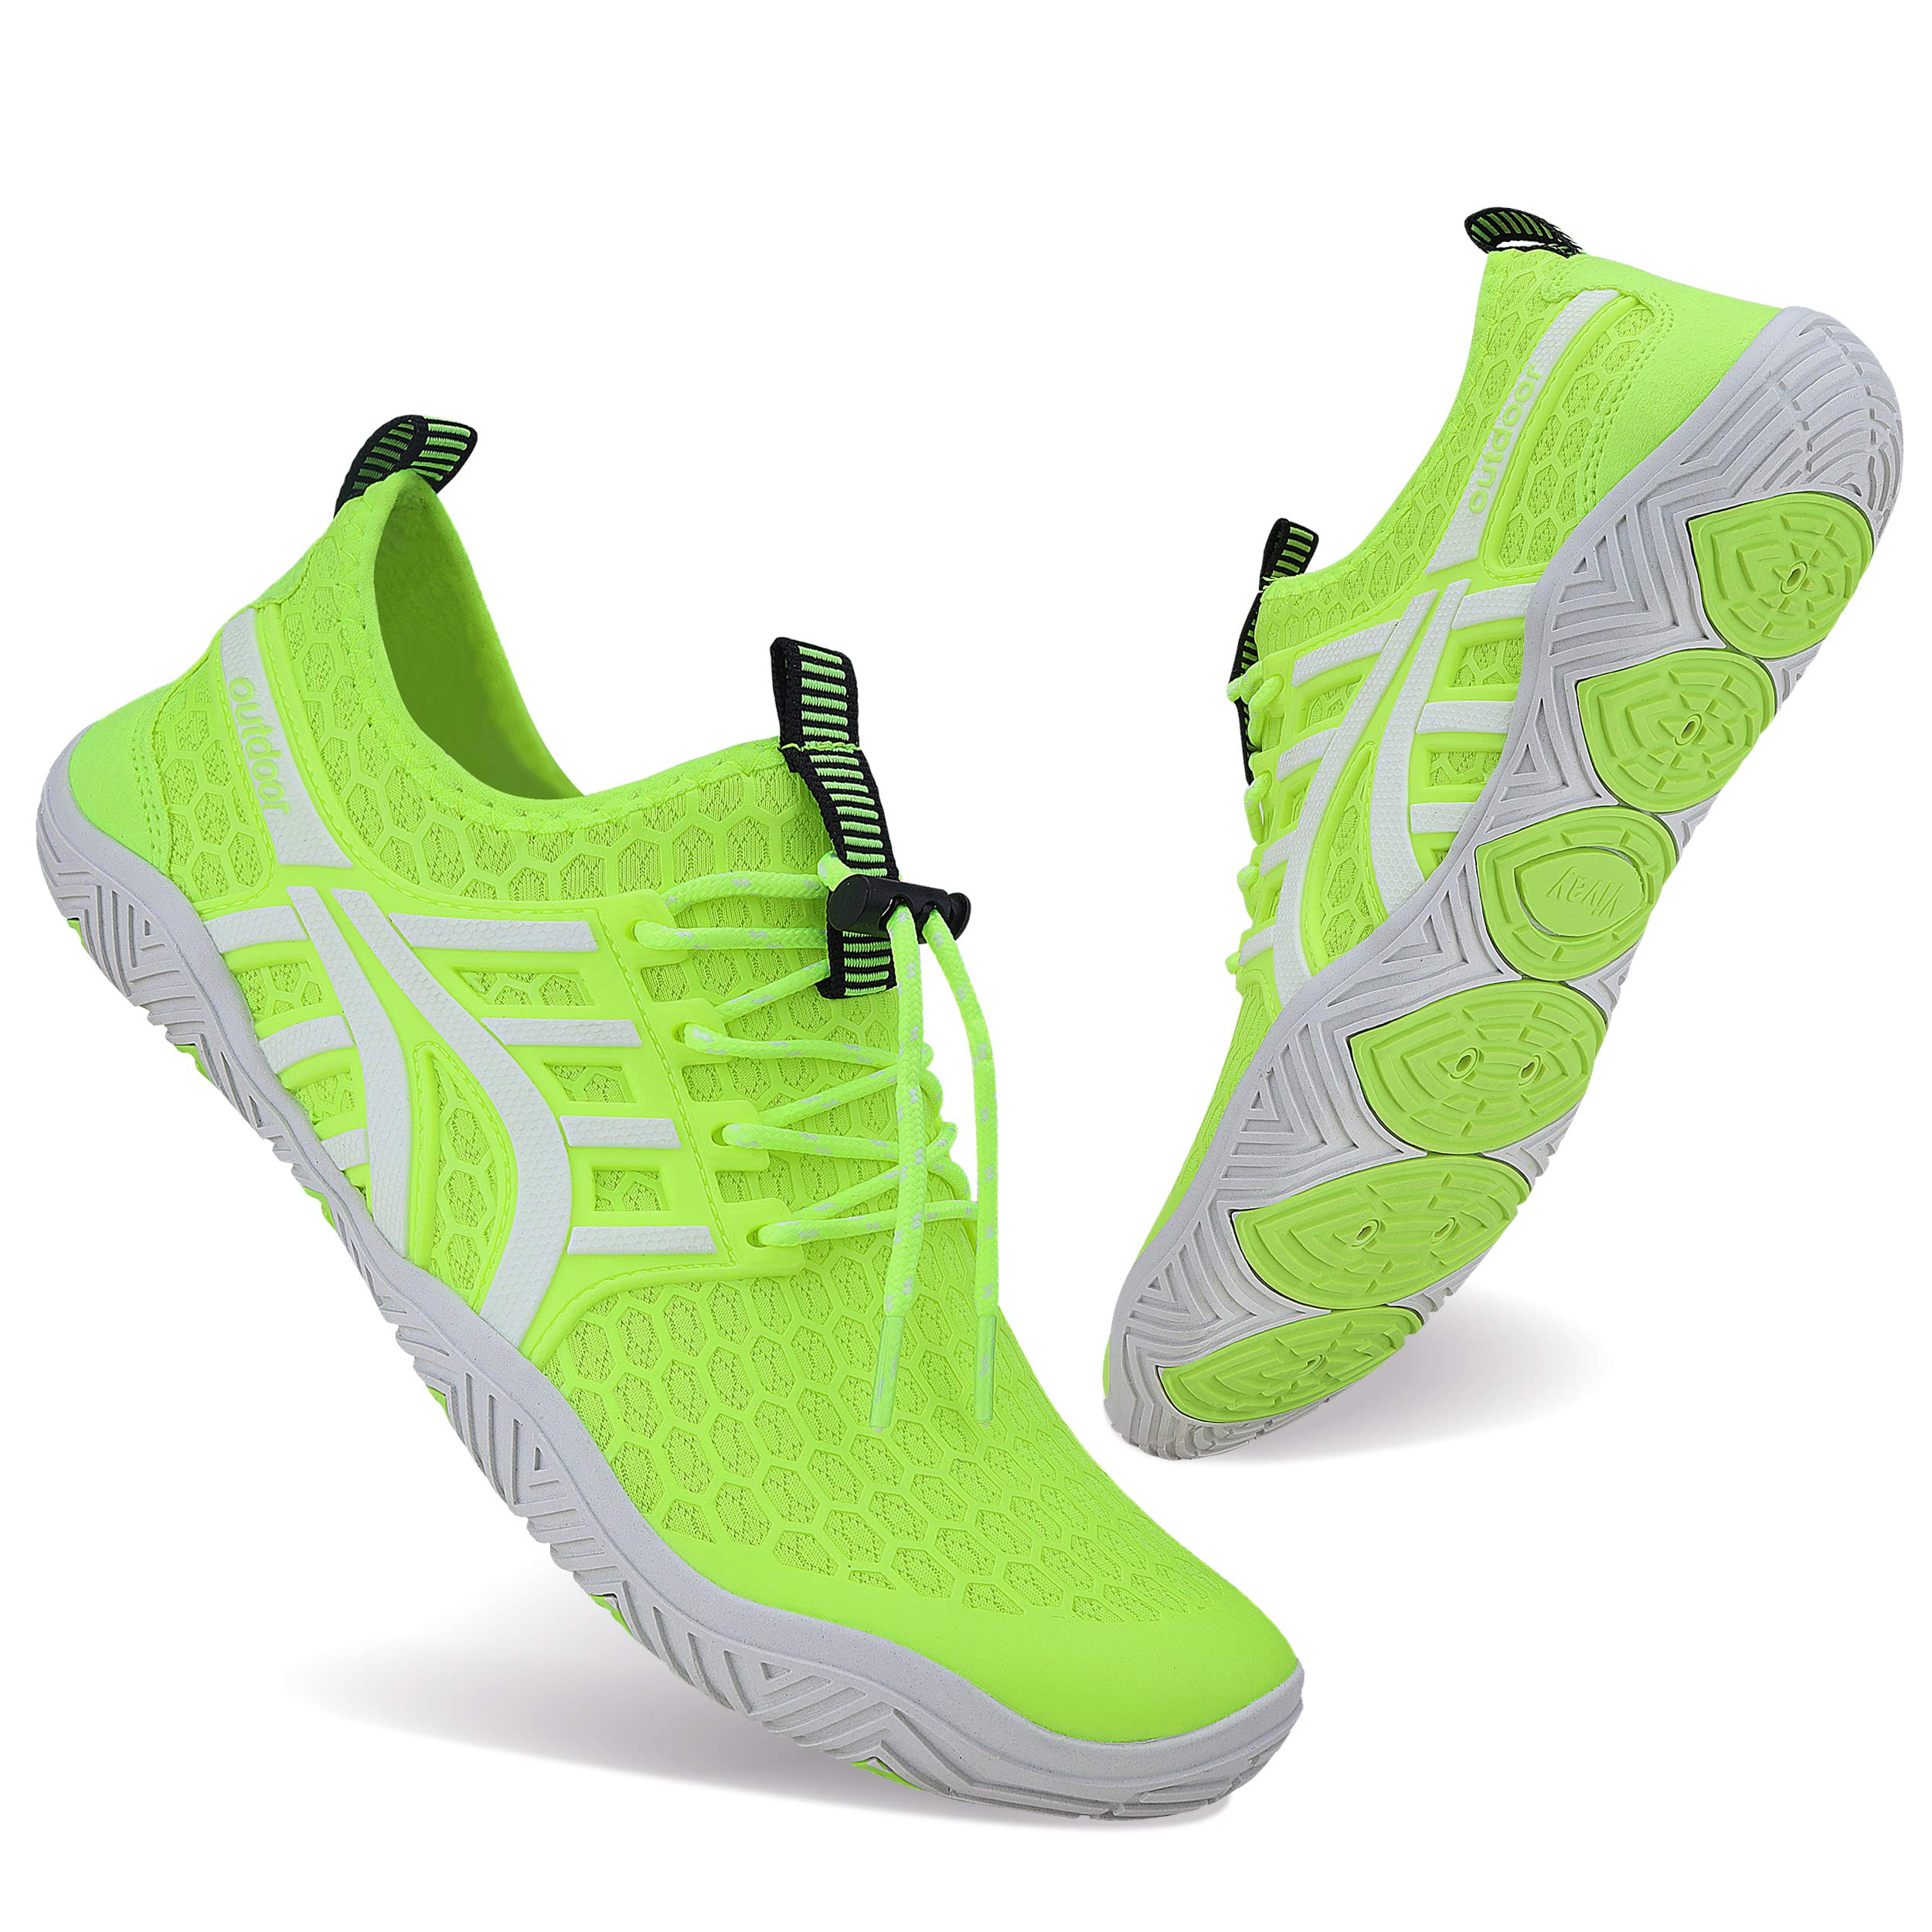 WXDZ Mens Womens Water Shoes Swim Shoes Aqua Shoes Beach Sports Quick Dry Barefoot for Boating Fishing Diving Surfing with Drainage Driving Yoga Upstream